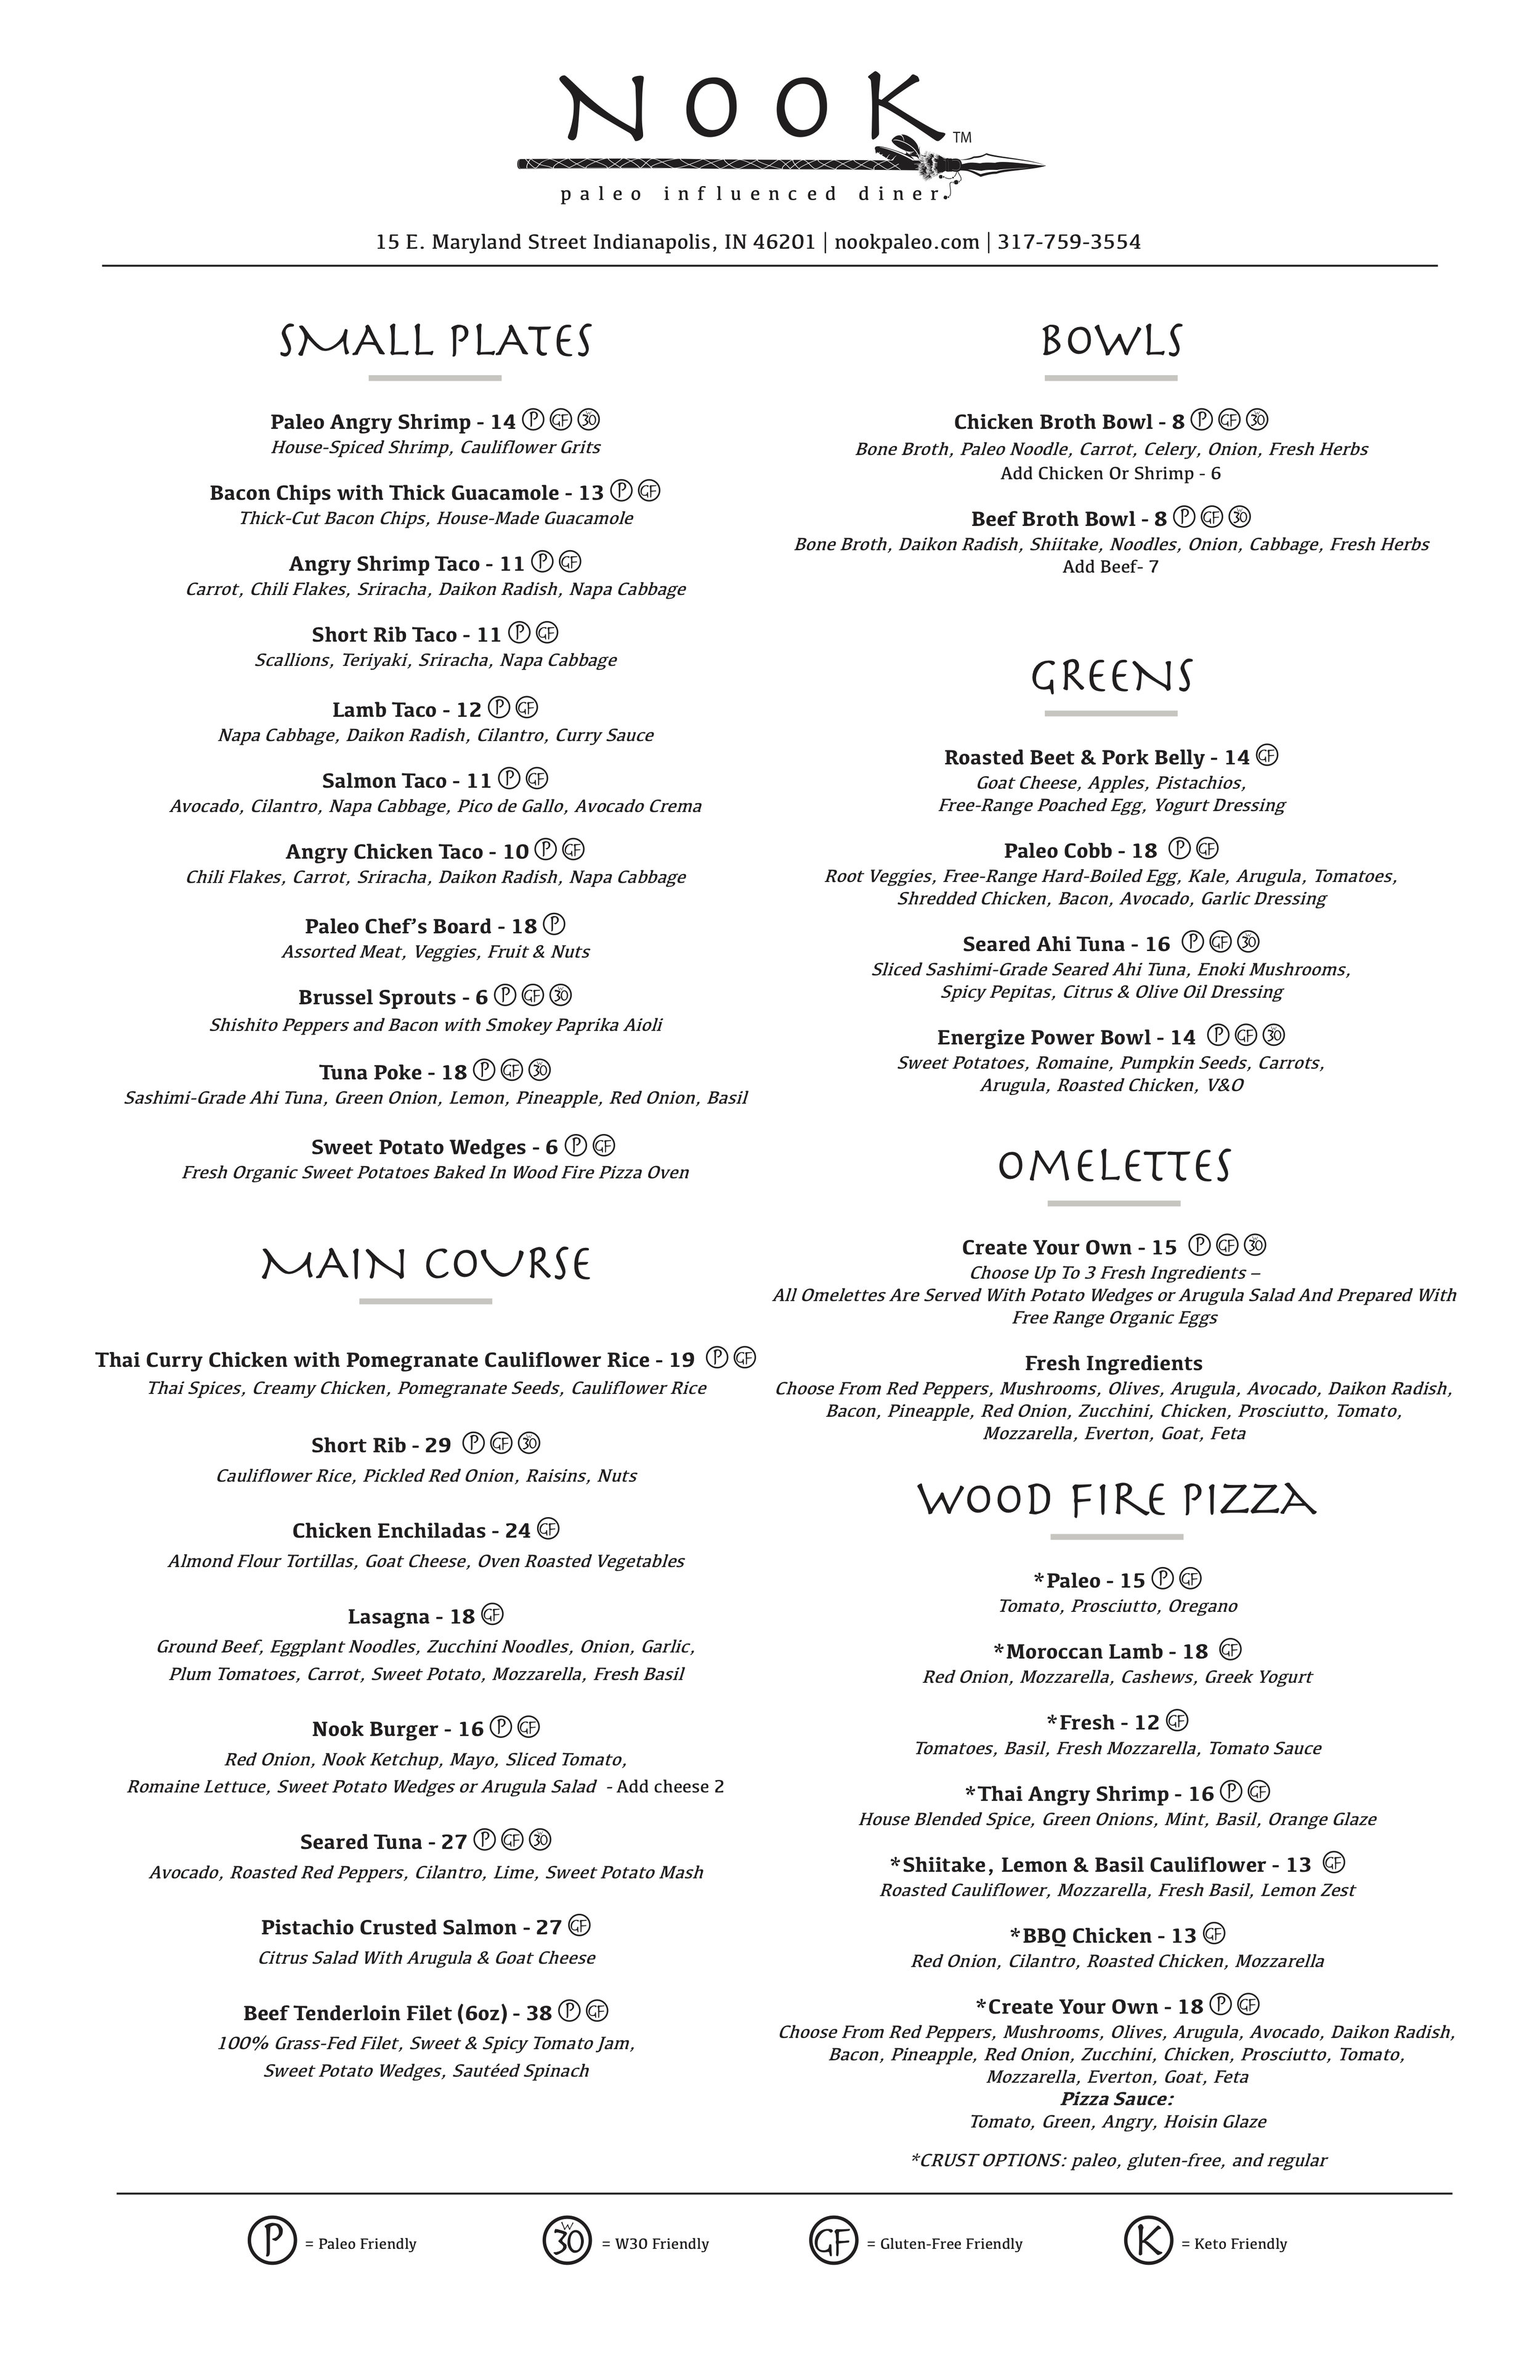 Nook, A Paleo-Influenced-Diner-menu-page-1.jpg